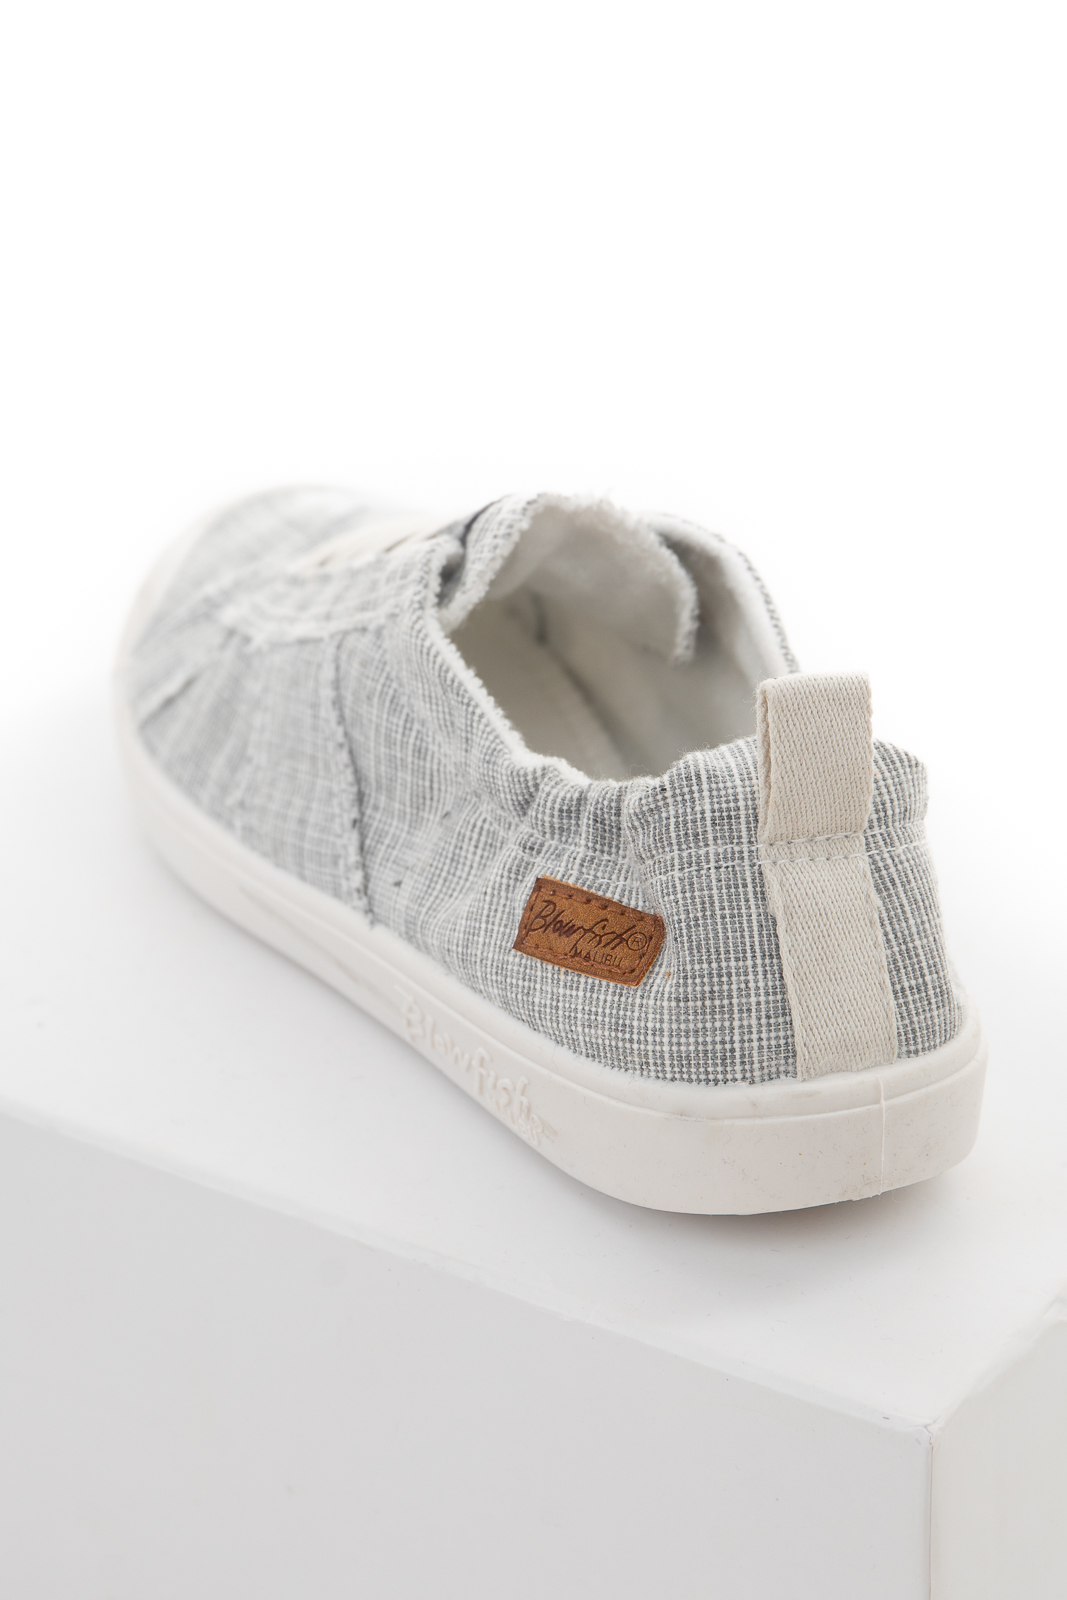 Stone and White Two Tone Fabric Sneakers with Elastic Laces